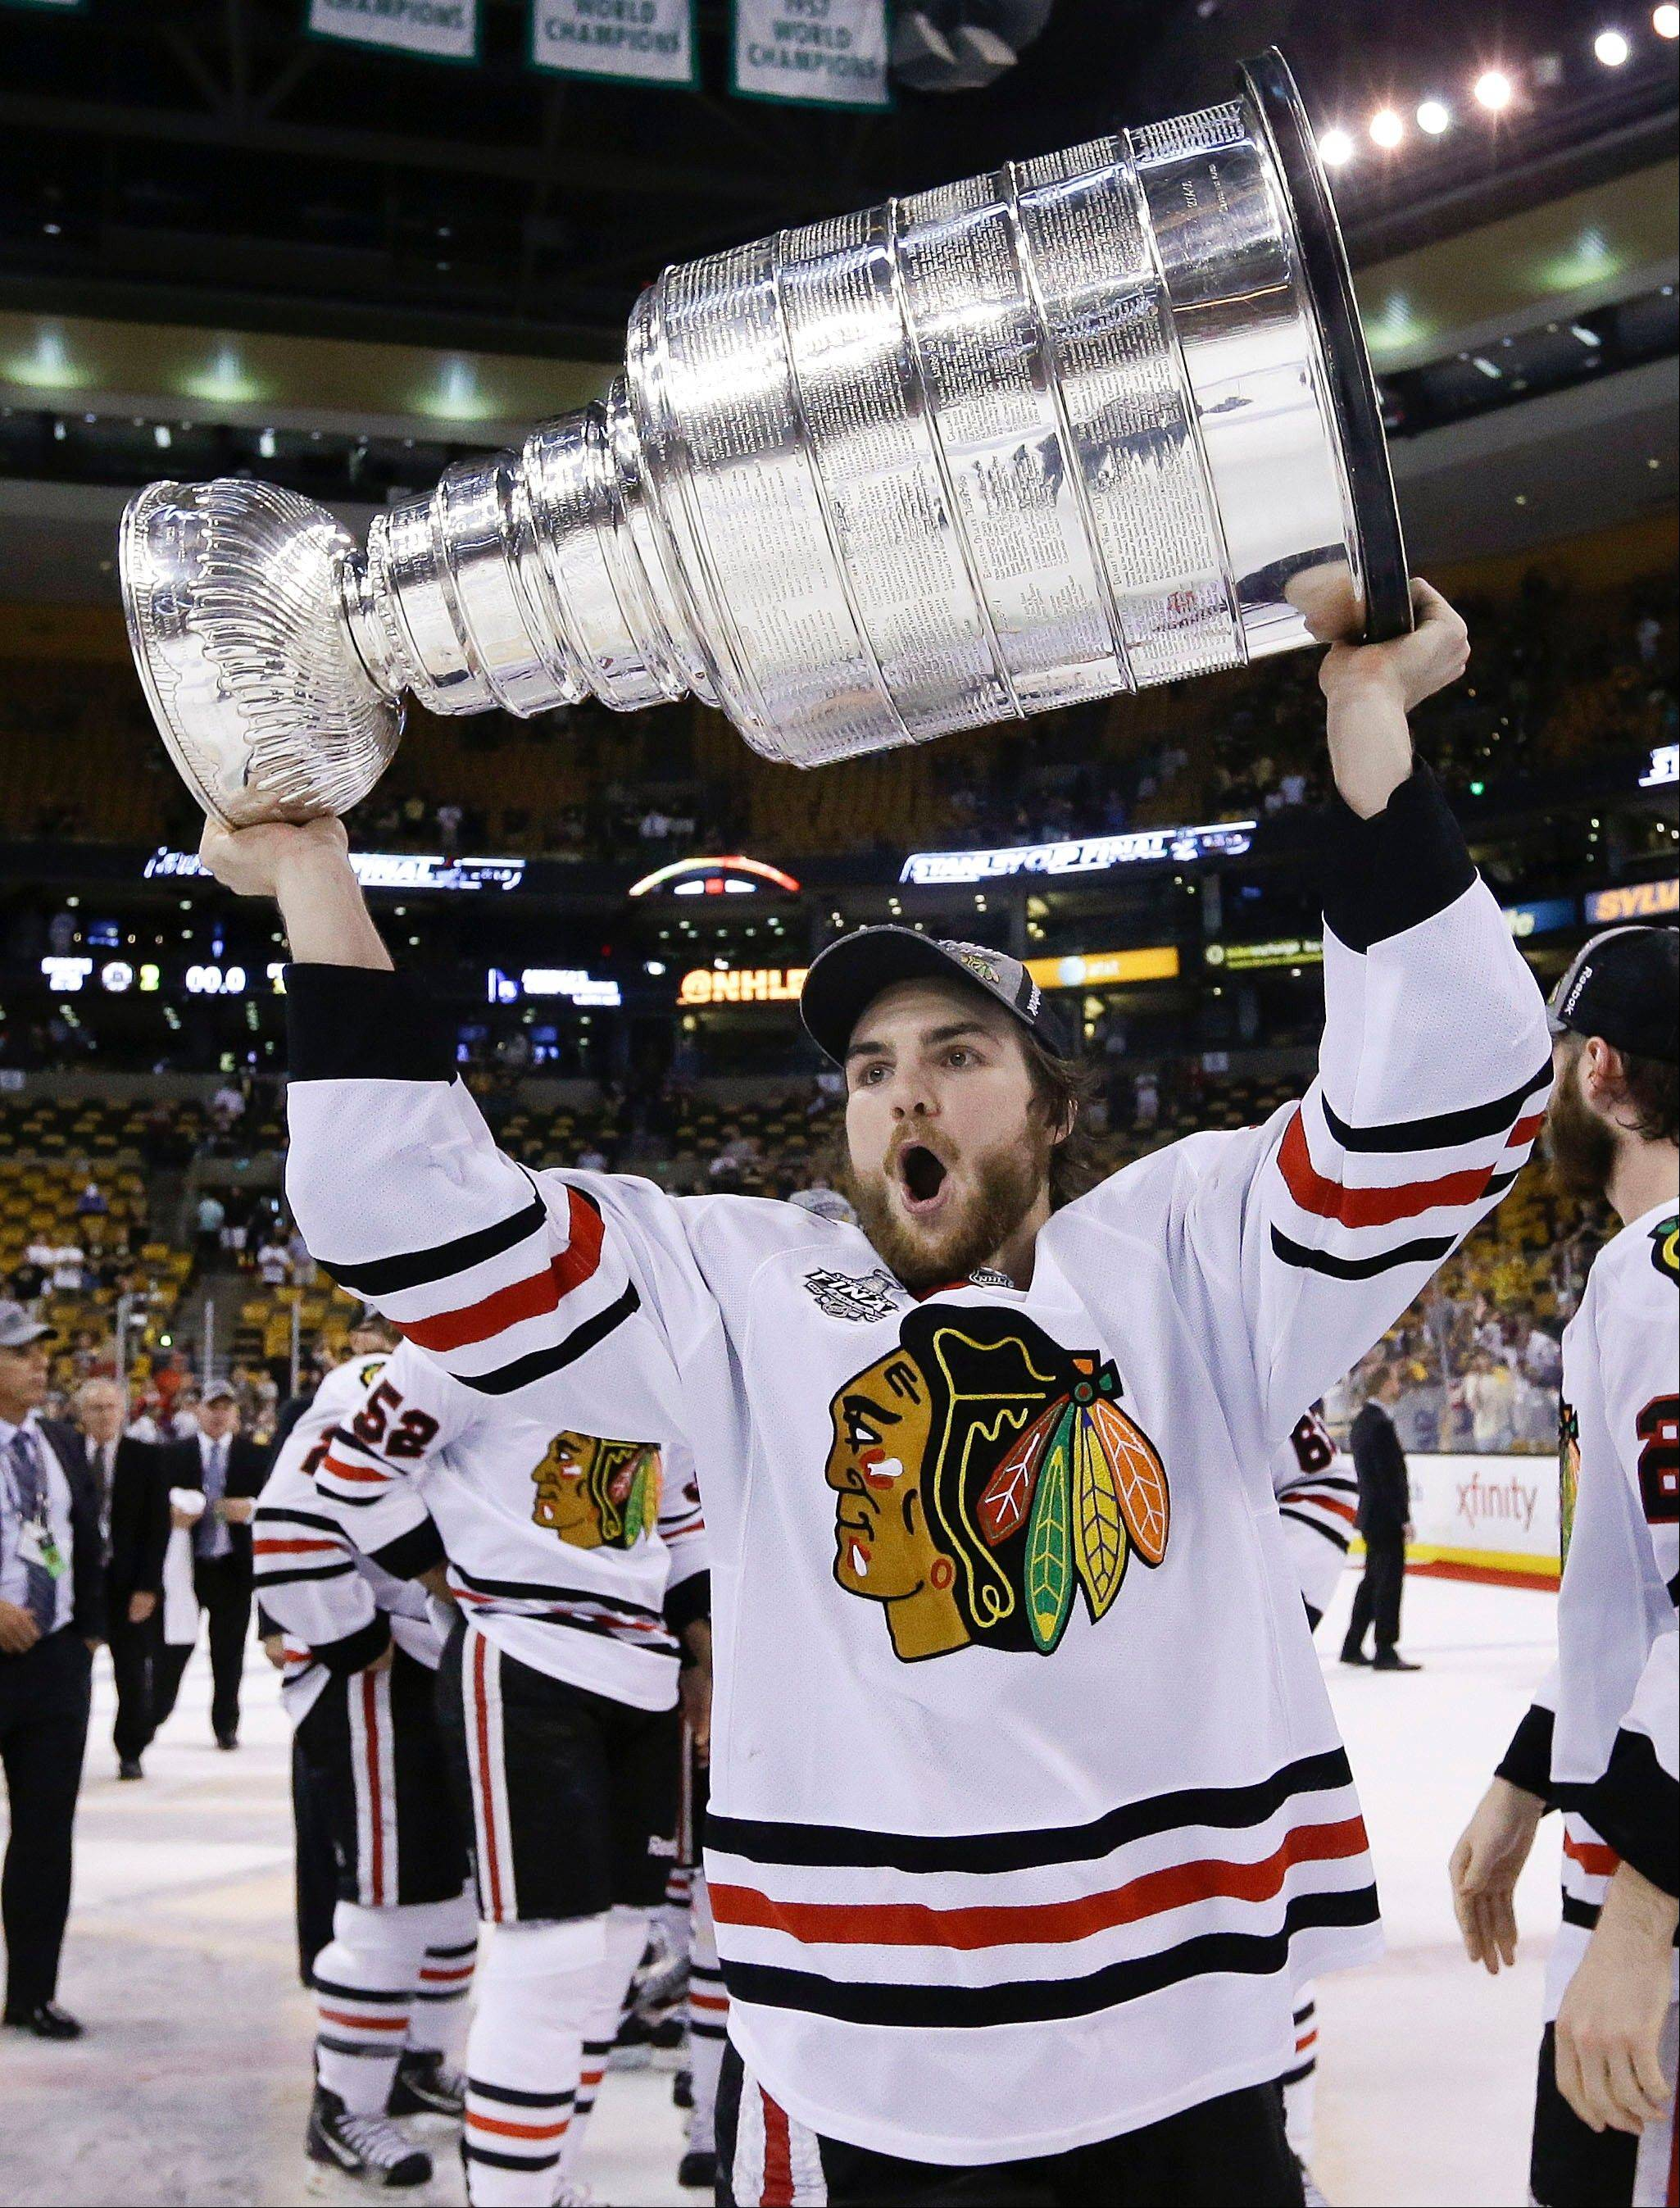 Michael Frolik hoists the Stanley Cup after the Blackhawks beat the Boston Bruins 3-2 in Game 6 last Monday.